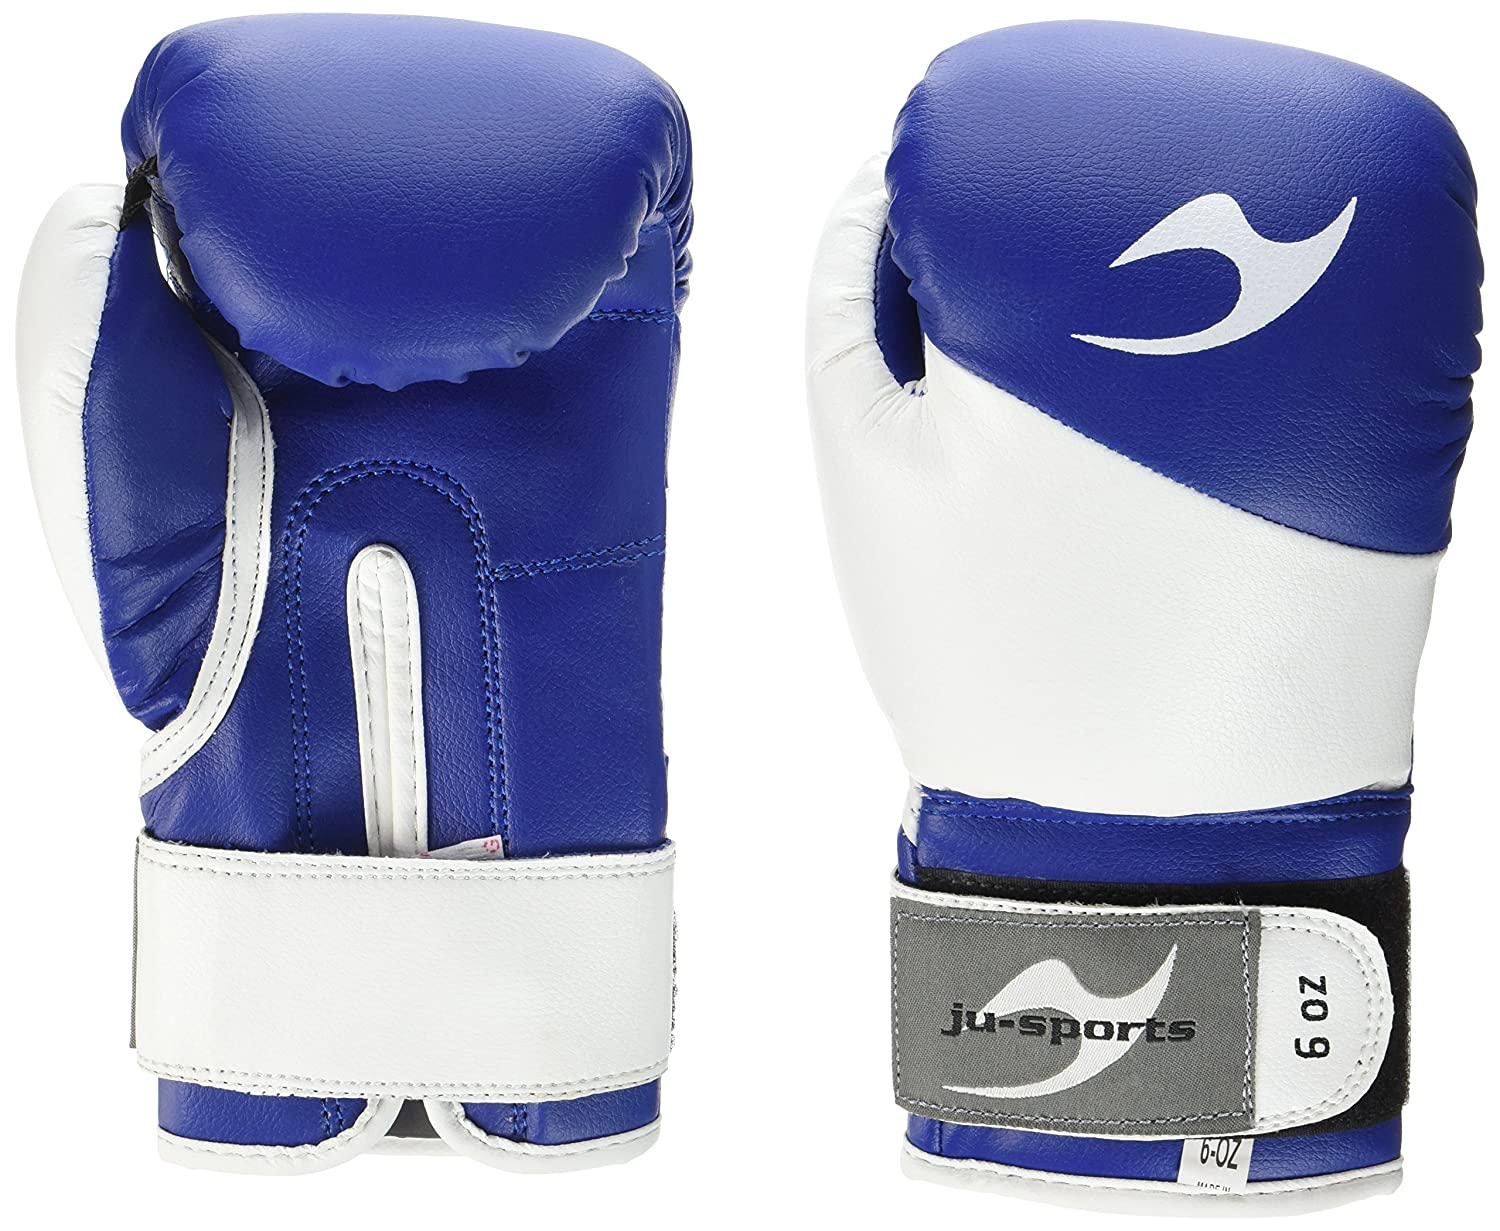 Ju-Sports – Guantes de Boxeo Bonsai 603